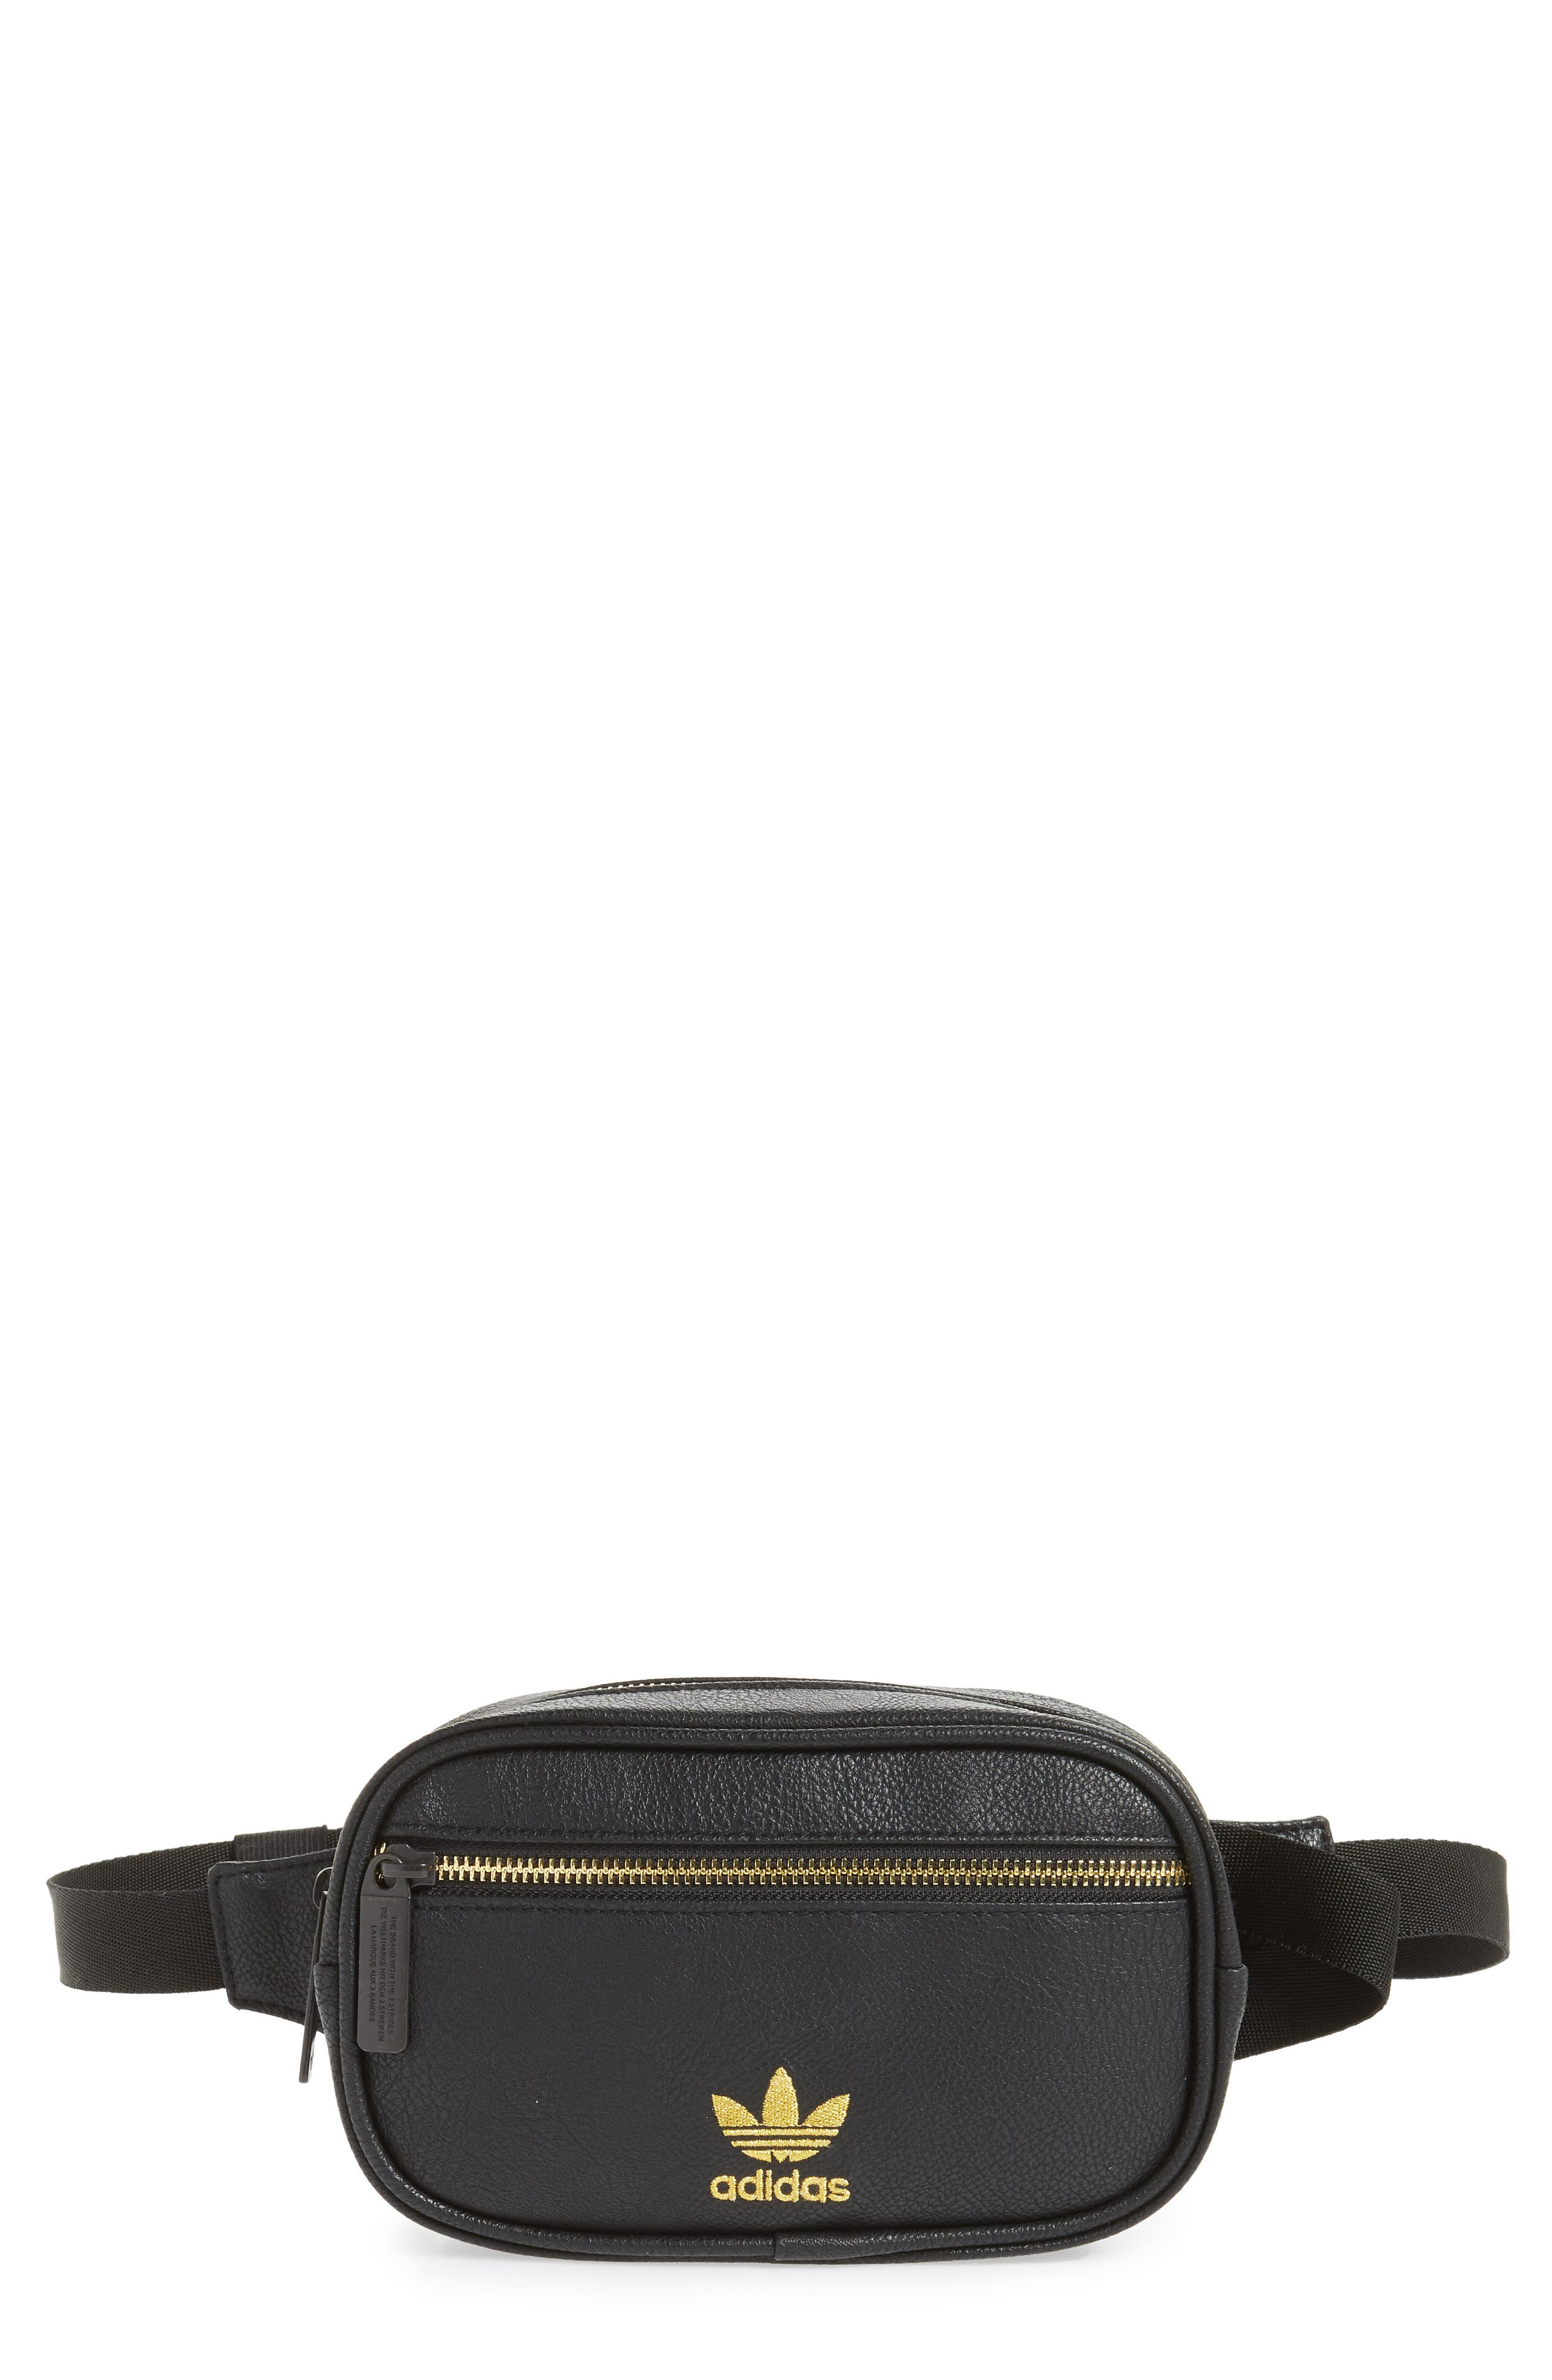 adidas Ori Faux Leather Fanny Pack,                             Main thumbnail 1, color,                             001